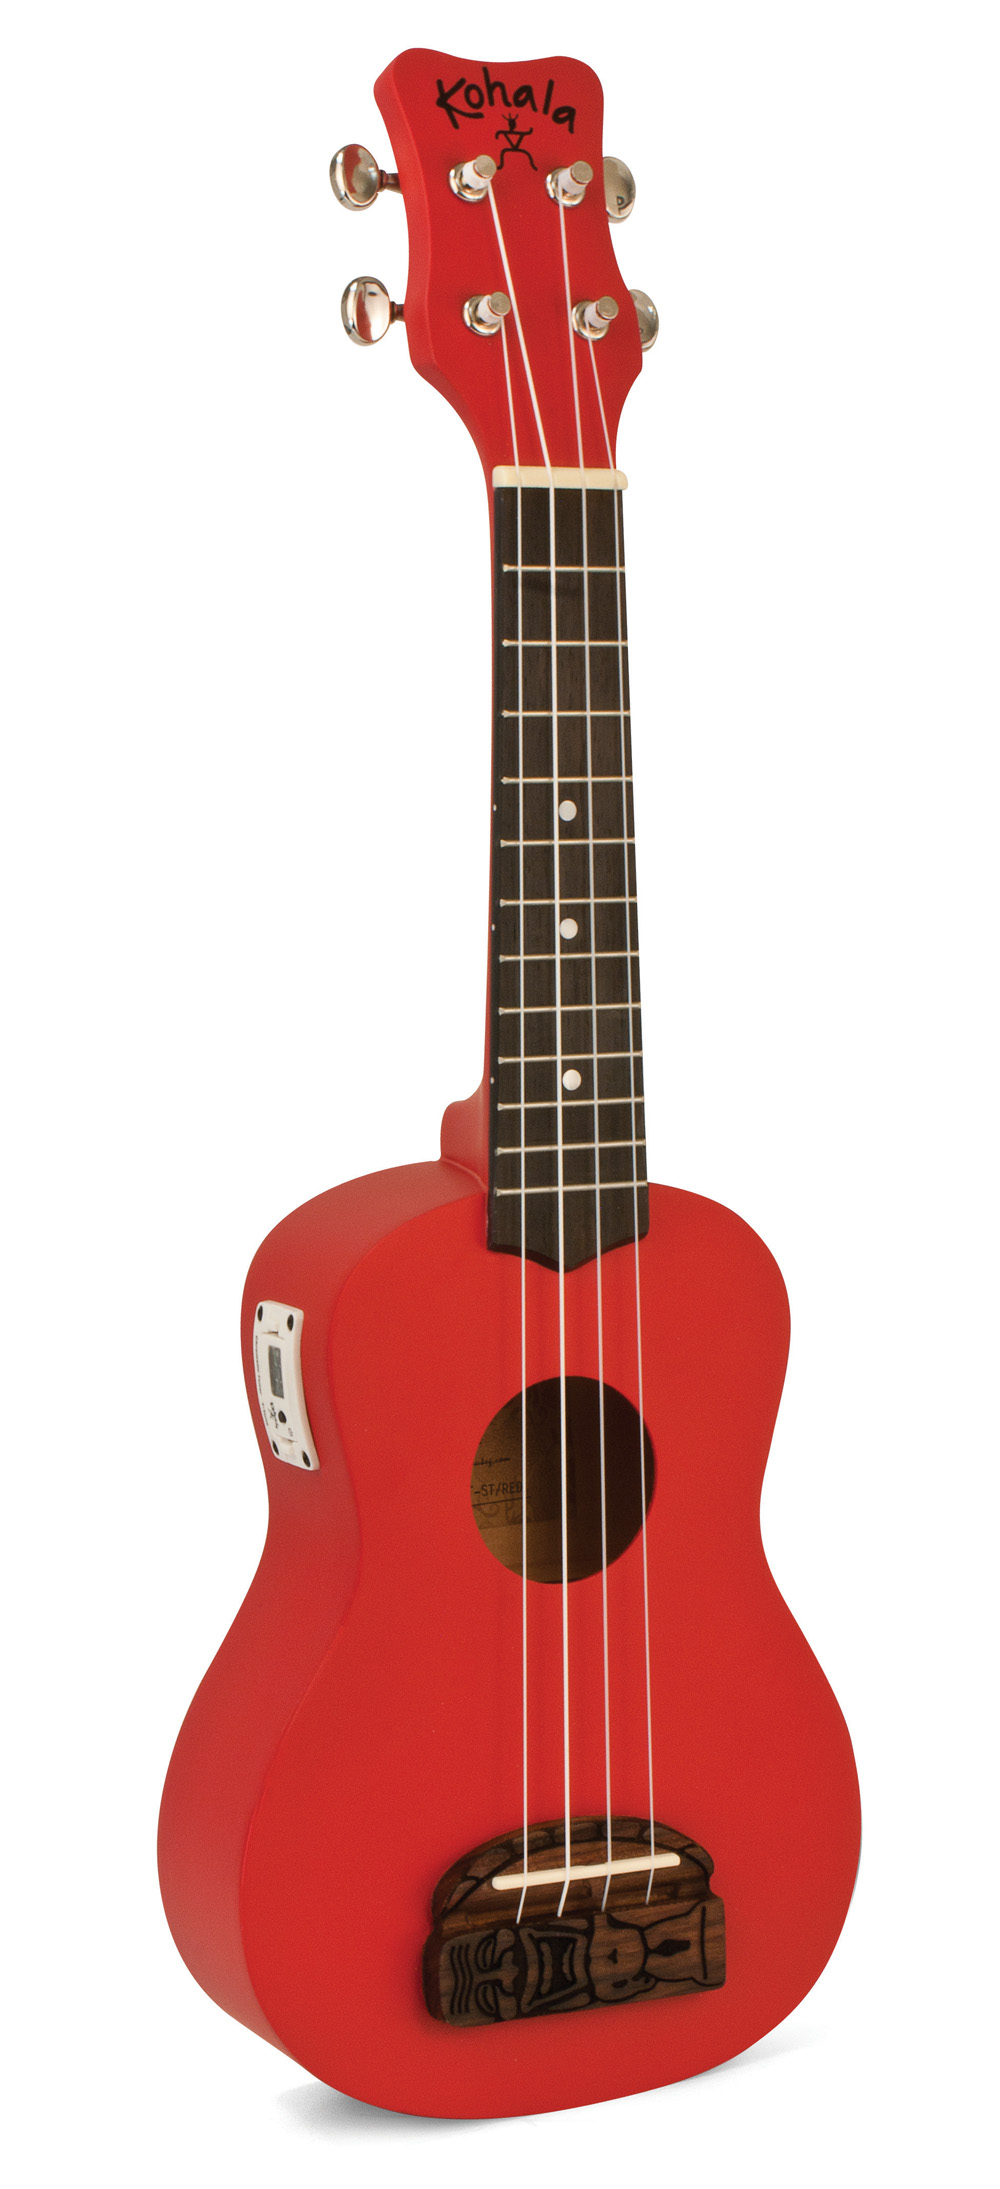 Kohala KT-STRD Tiki Uke Red Soprano Ukulele with Built-in-Tuner